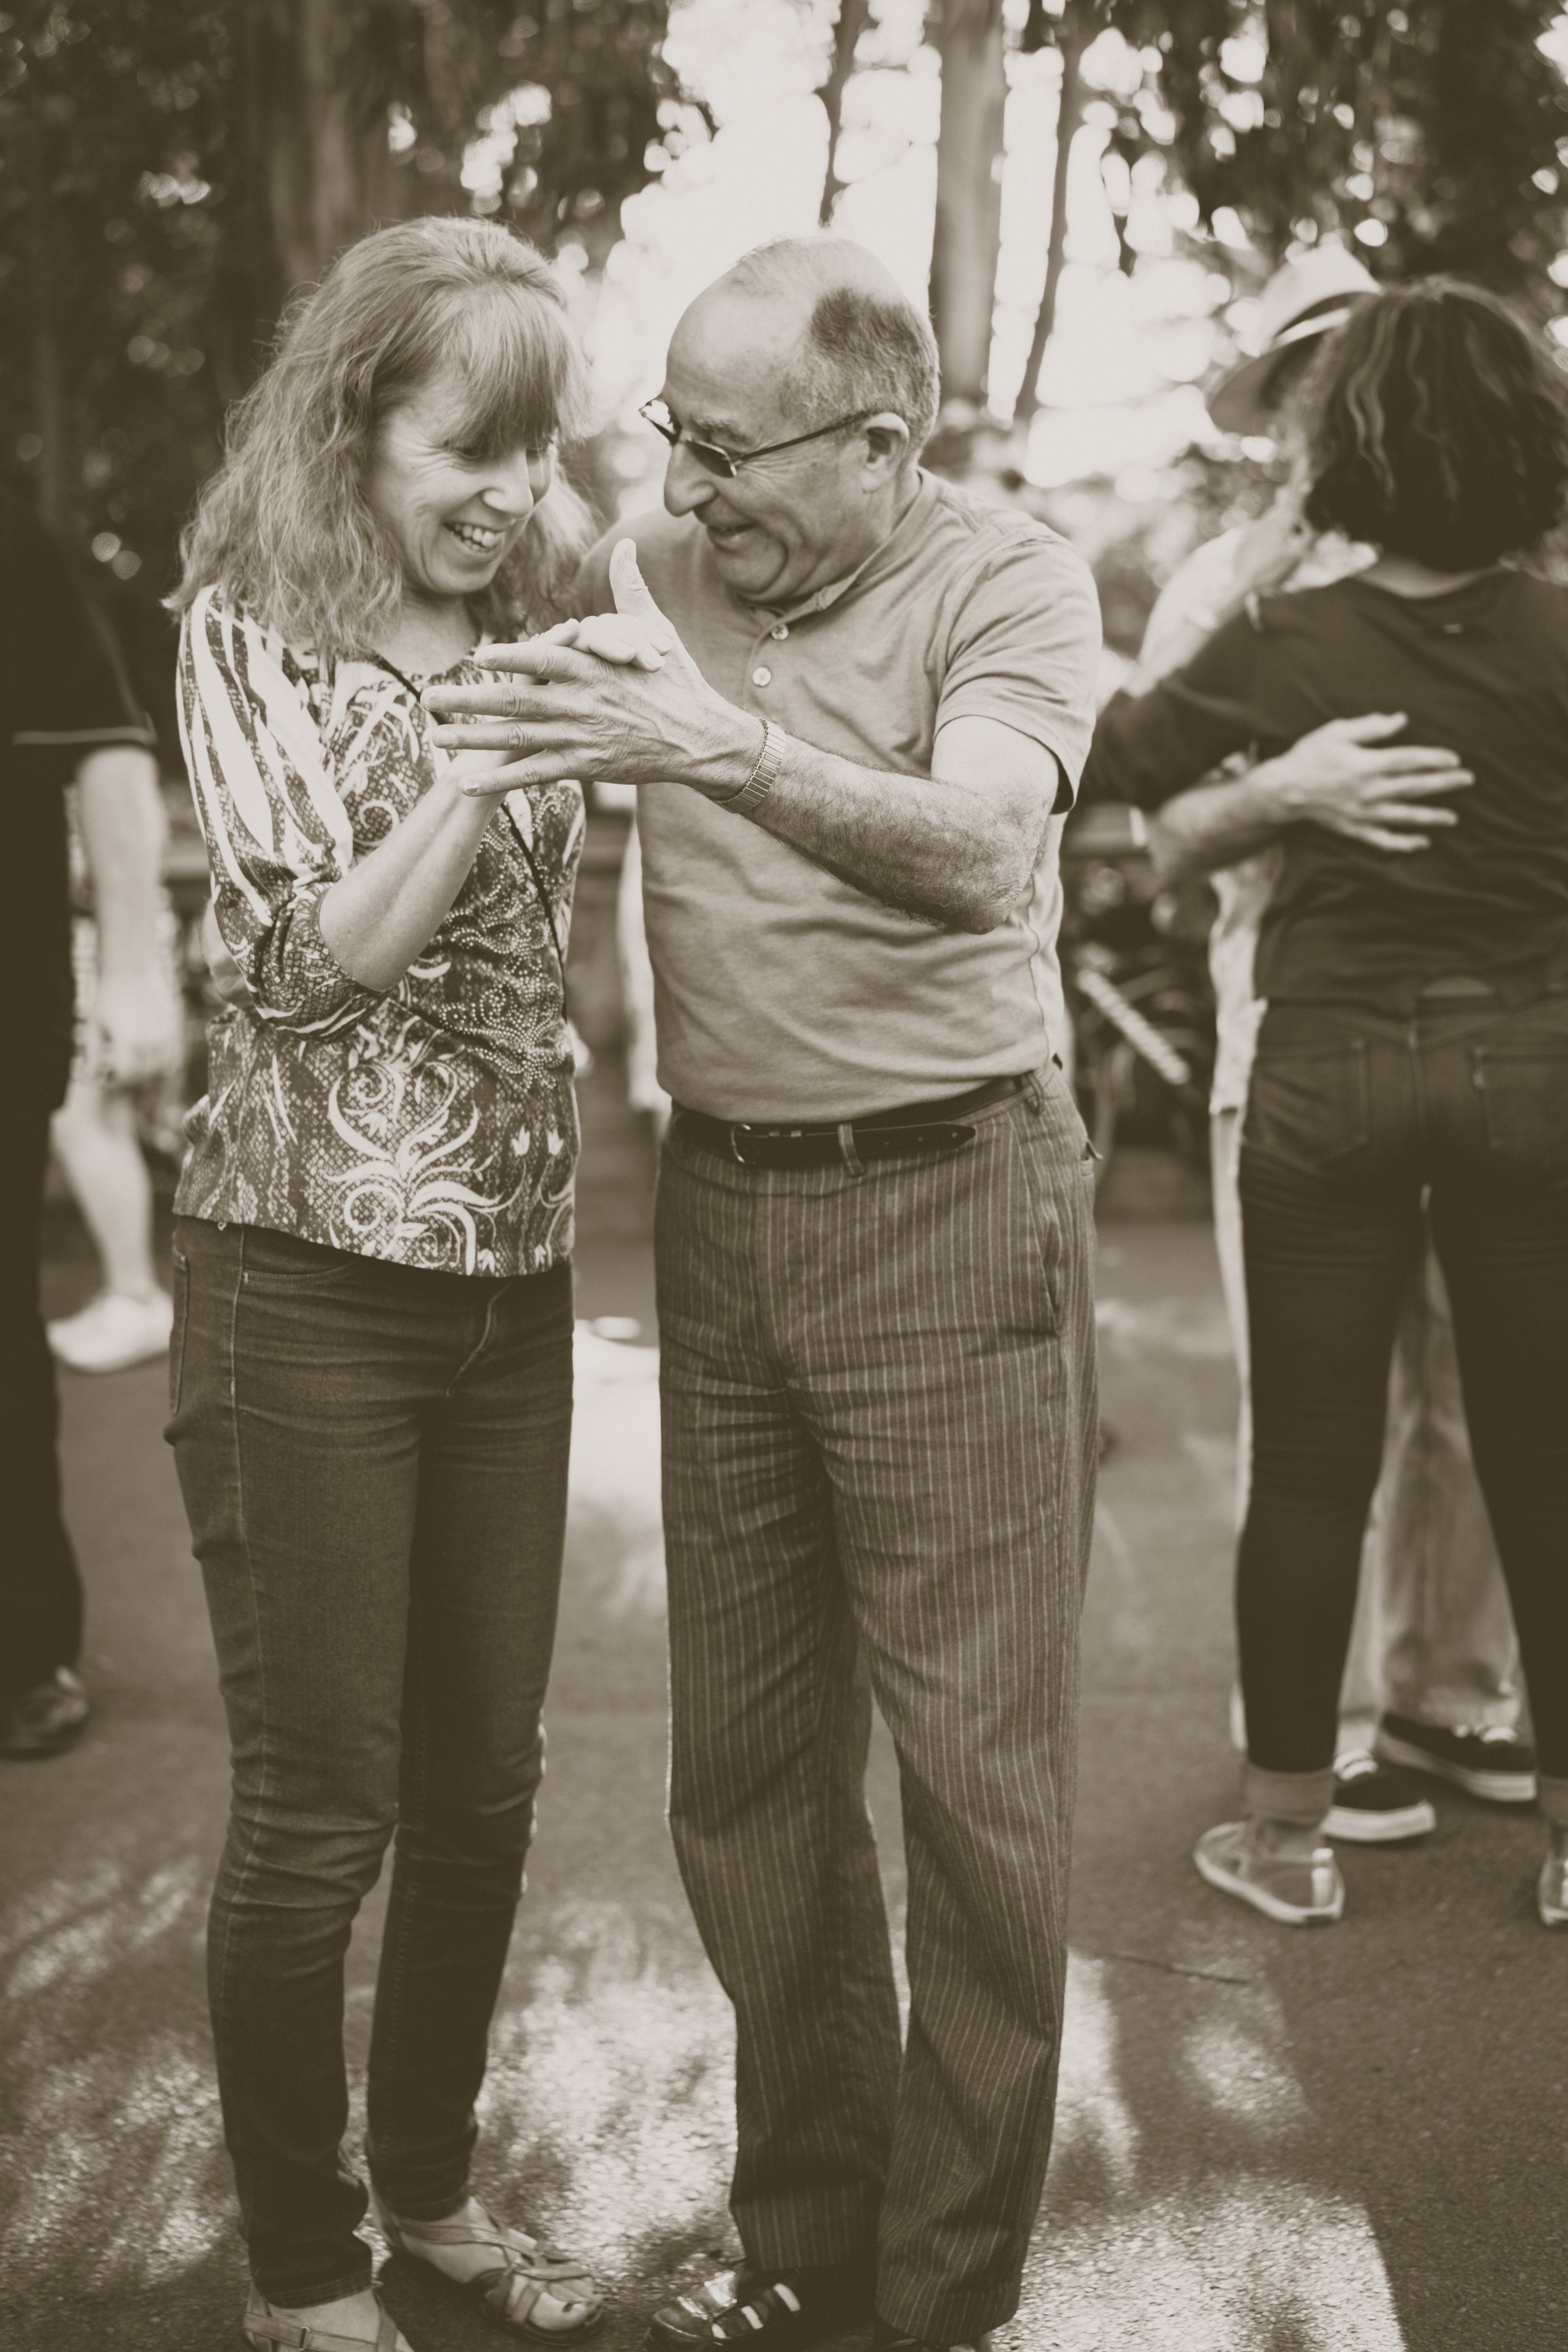 Old person dancing with middle aged person